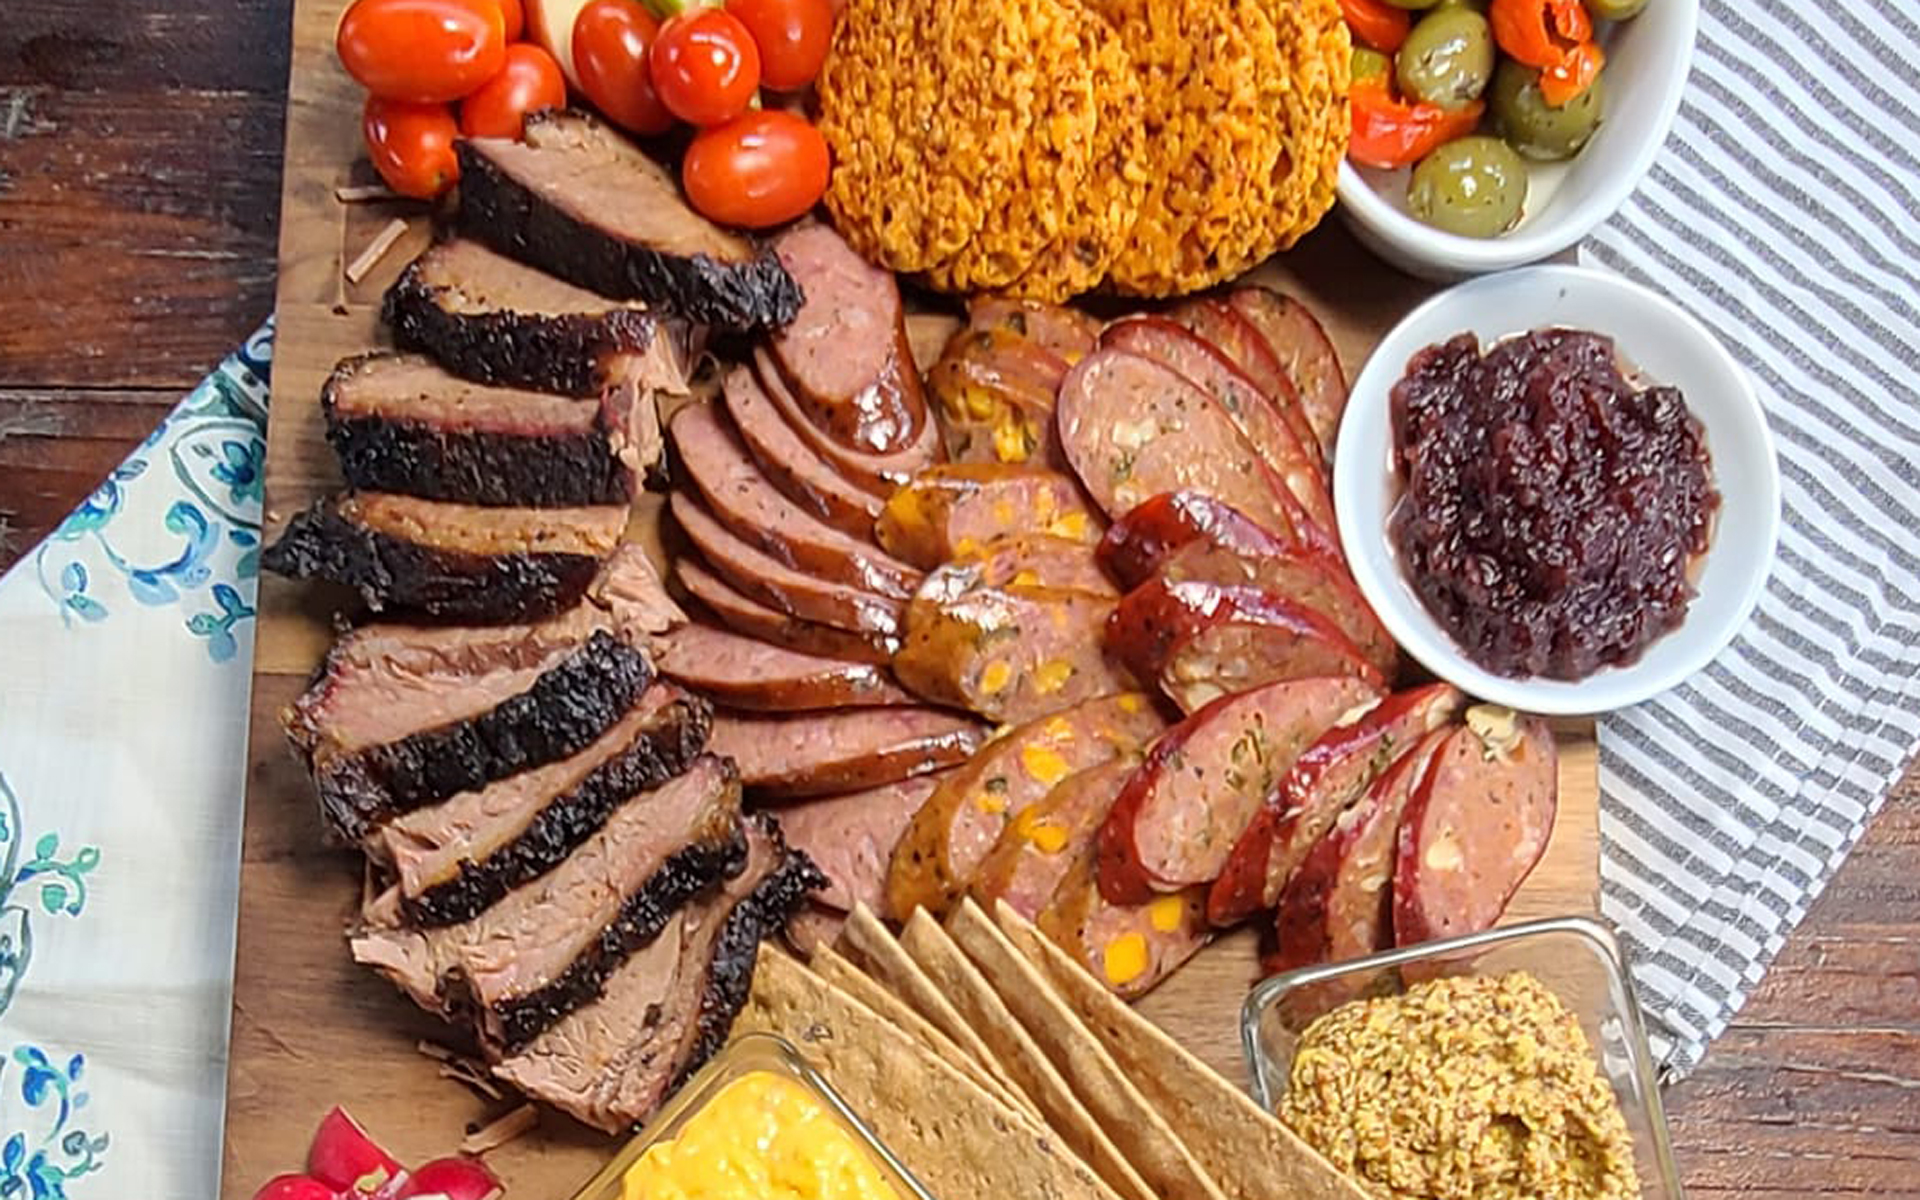 Dickey's Barbecue Pit in Weatherford, TX at Restaurant.com